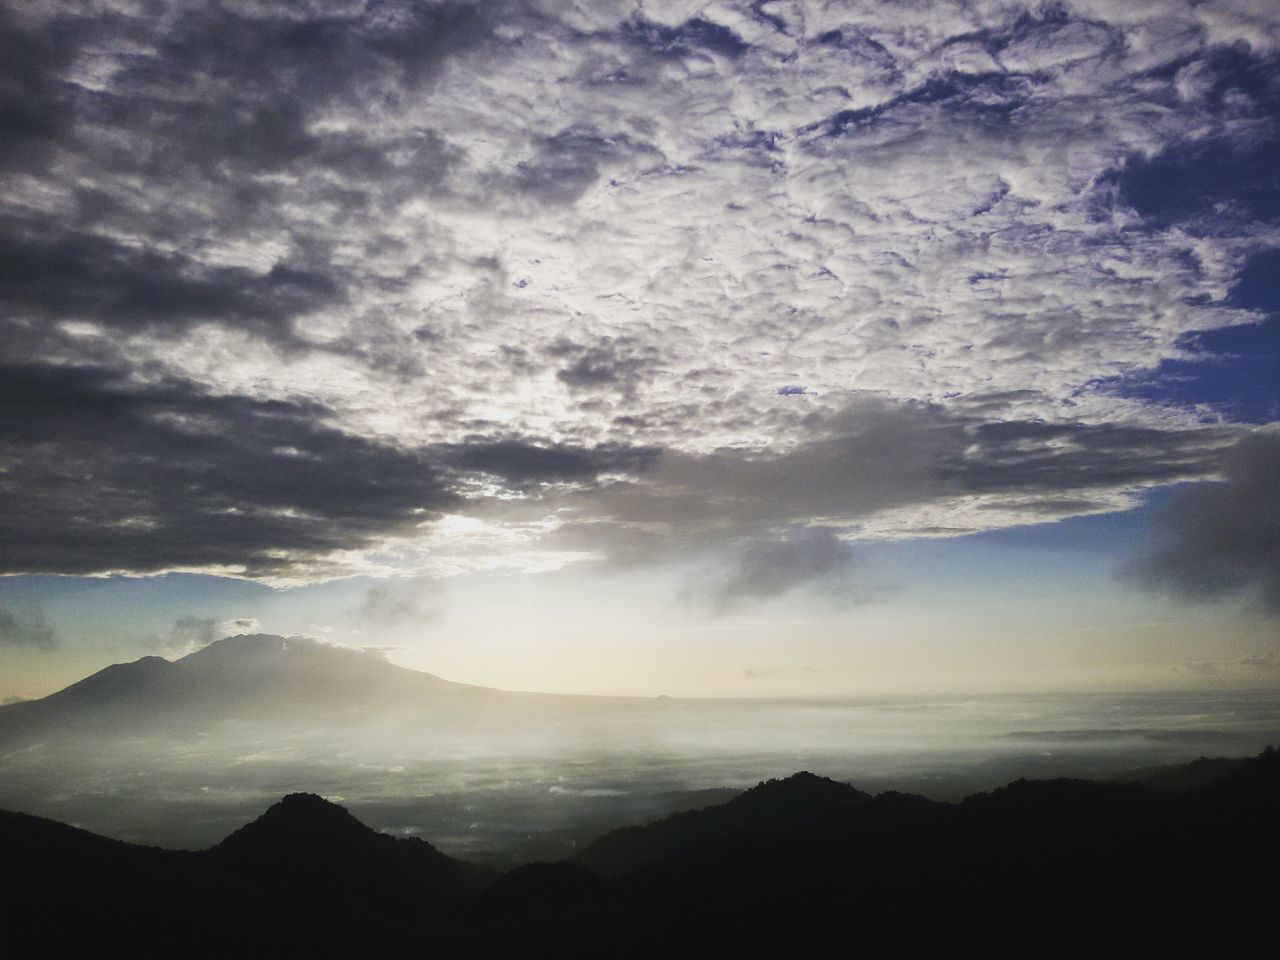 Mountain Nature Cloud - Sky Landscape Beauty In Nature Tranquility Ethereal Sky Outdoors Scenics Mountain Range Power In Nature Planet Earth TravelPhilippines Philippines Nature Summer Beauty In Nature Sunset